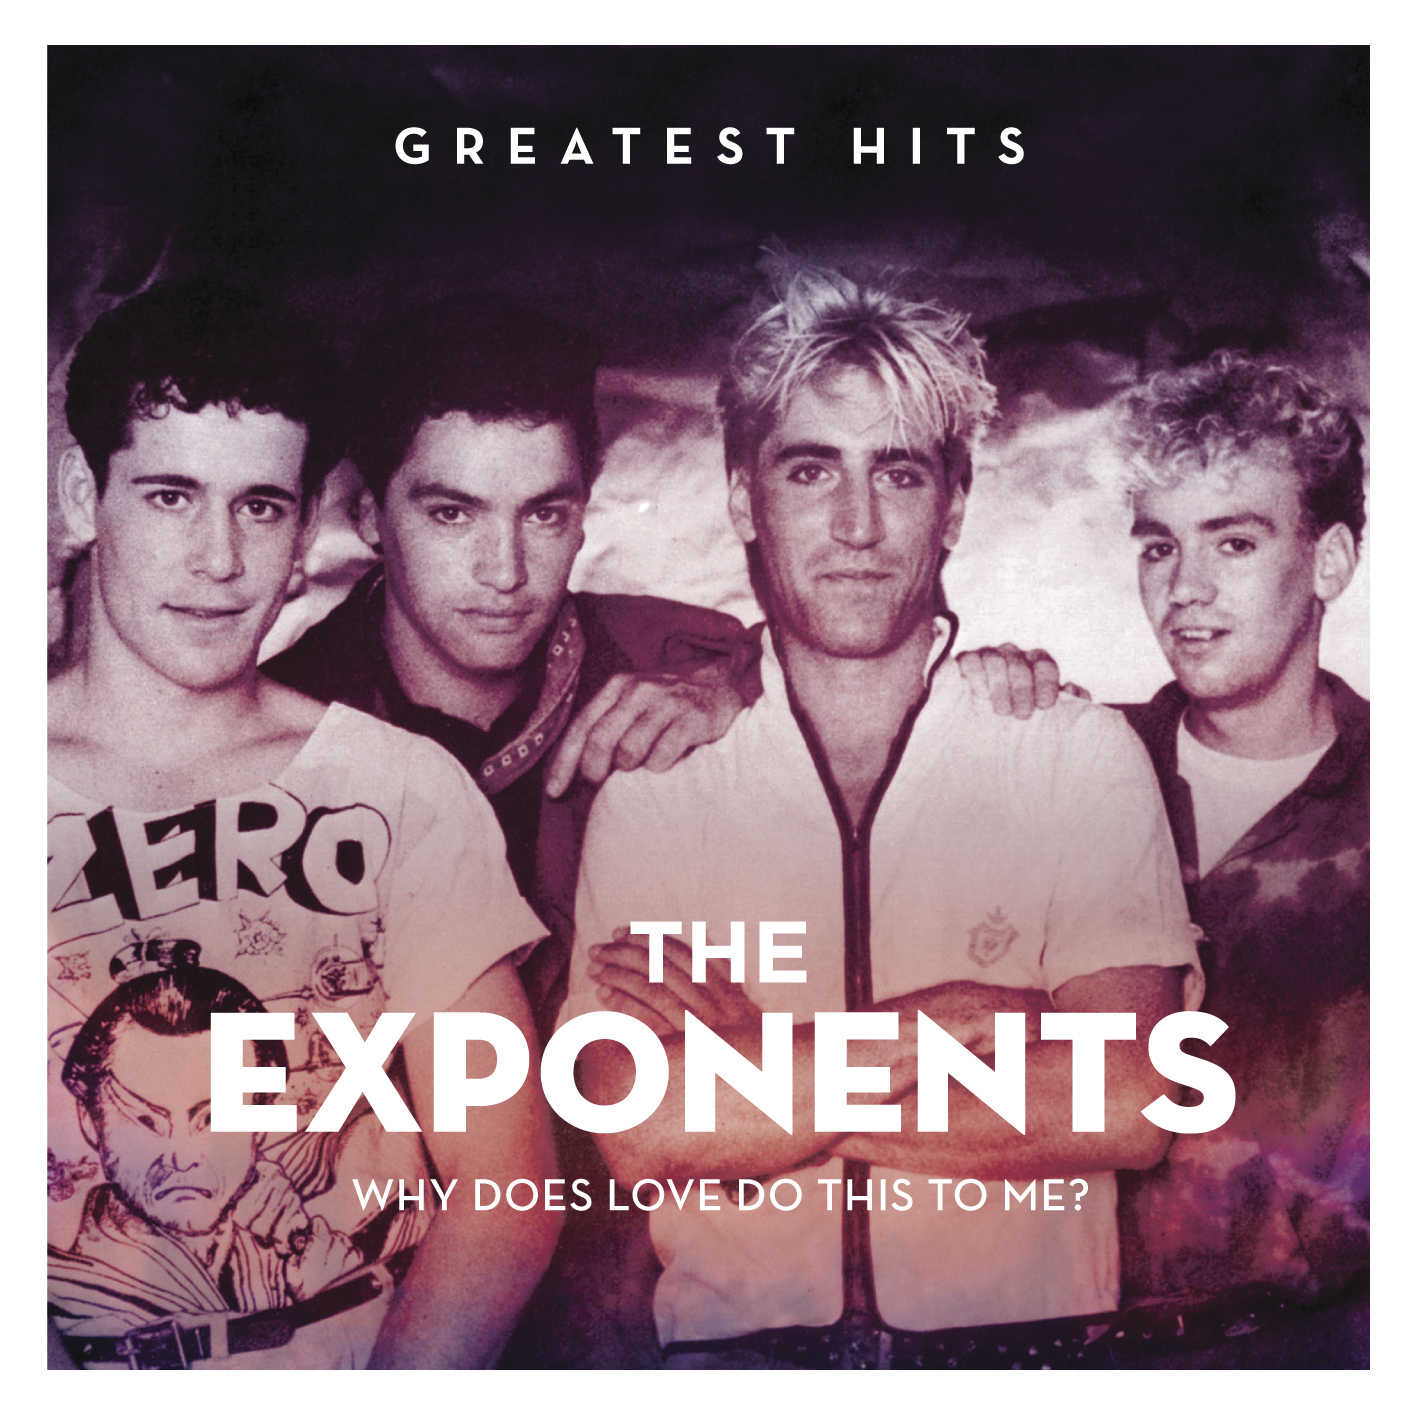 Why Does Love Do This To Me: The Exponents Greatest Hits by The Exponents image